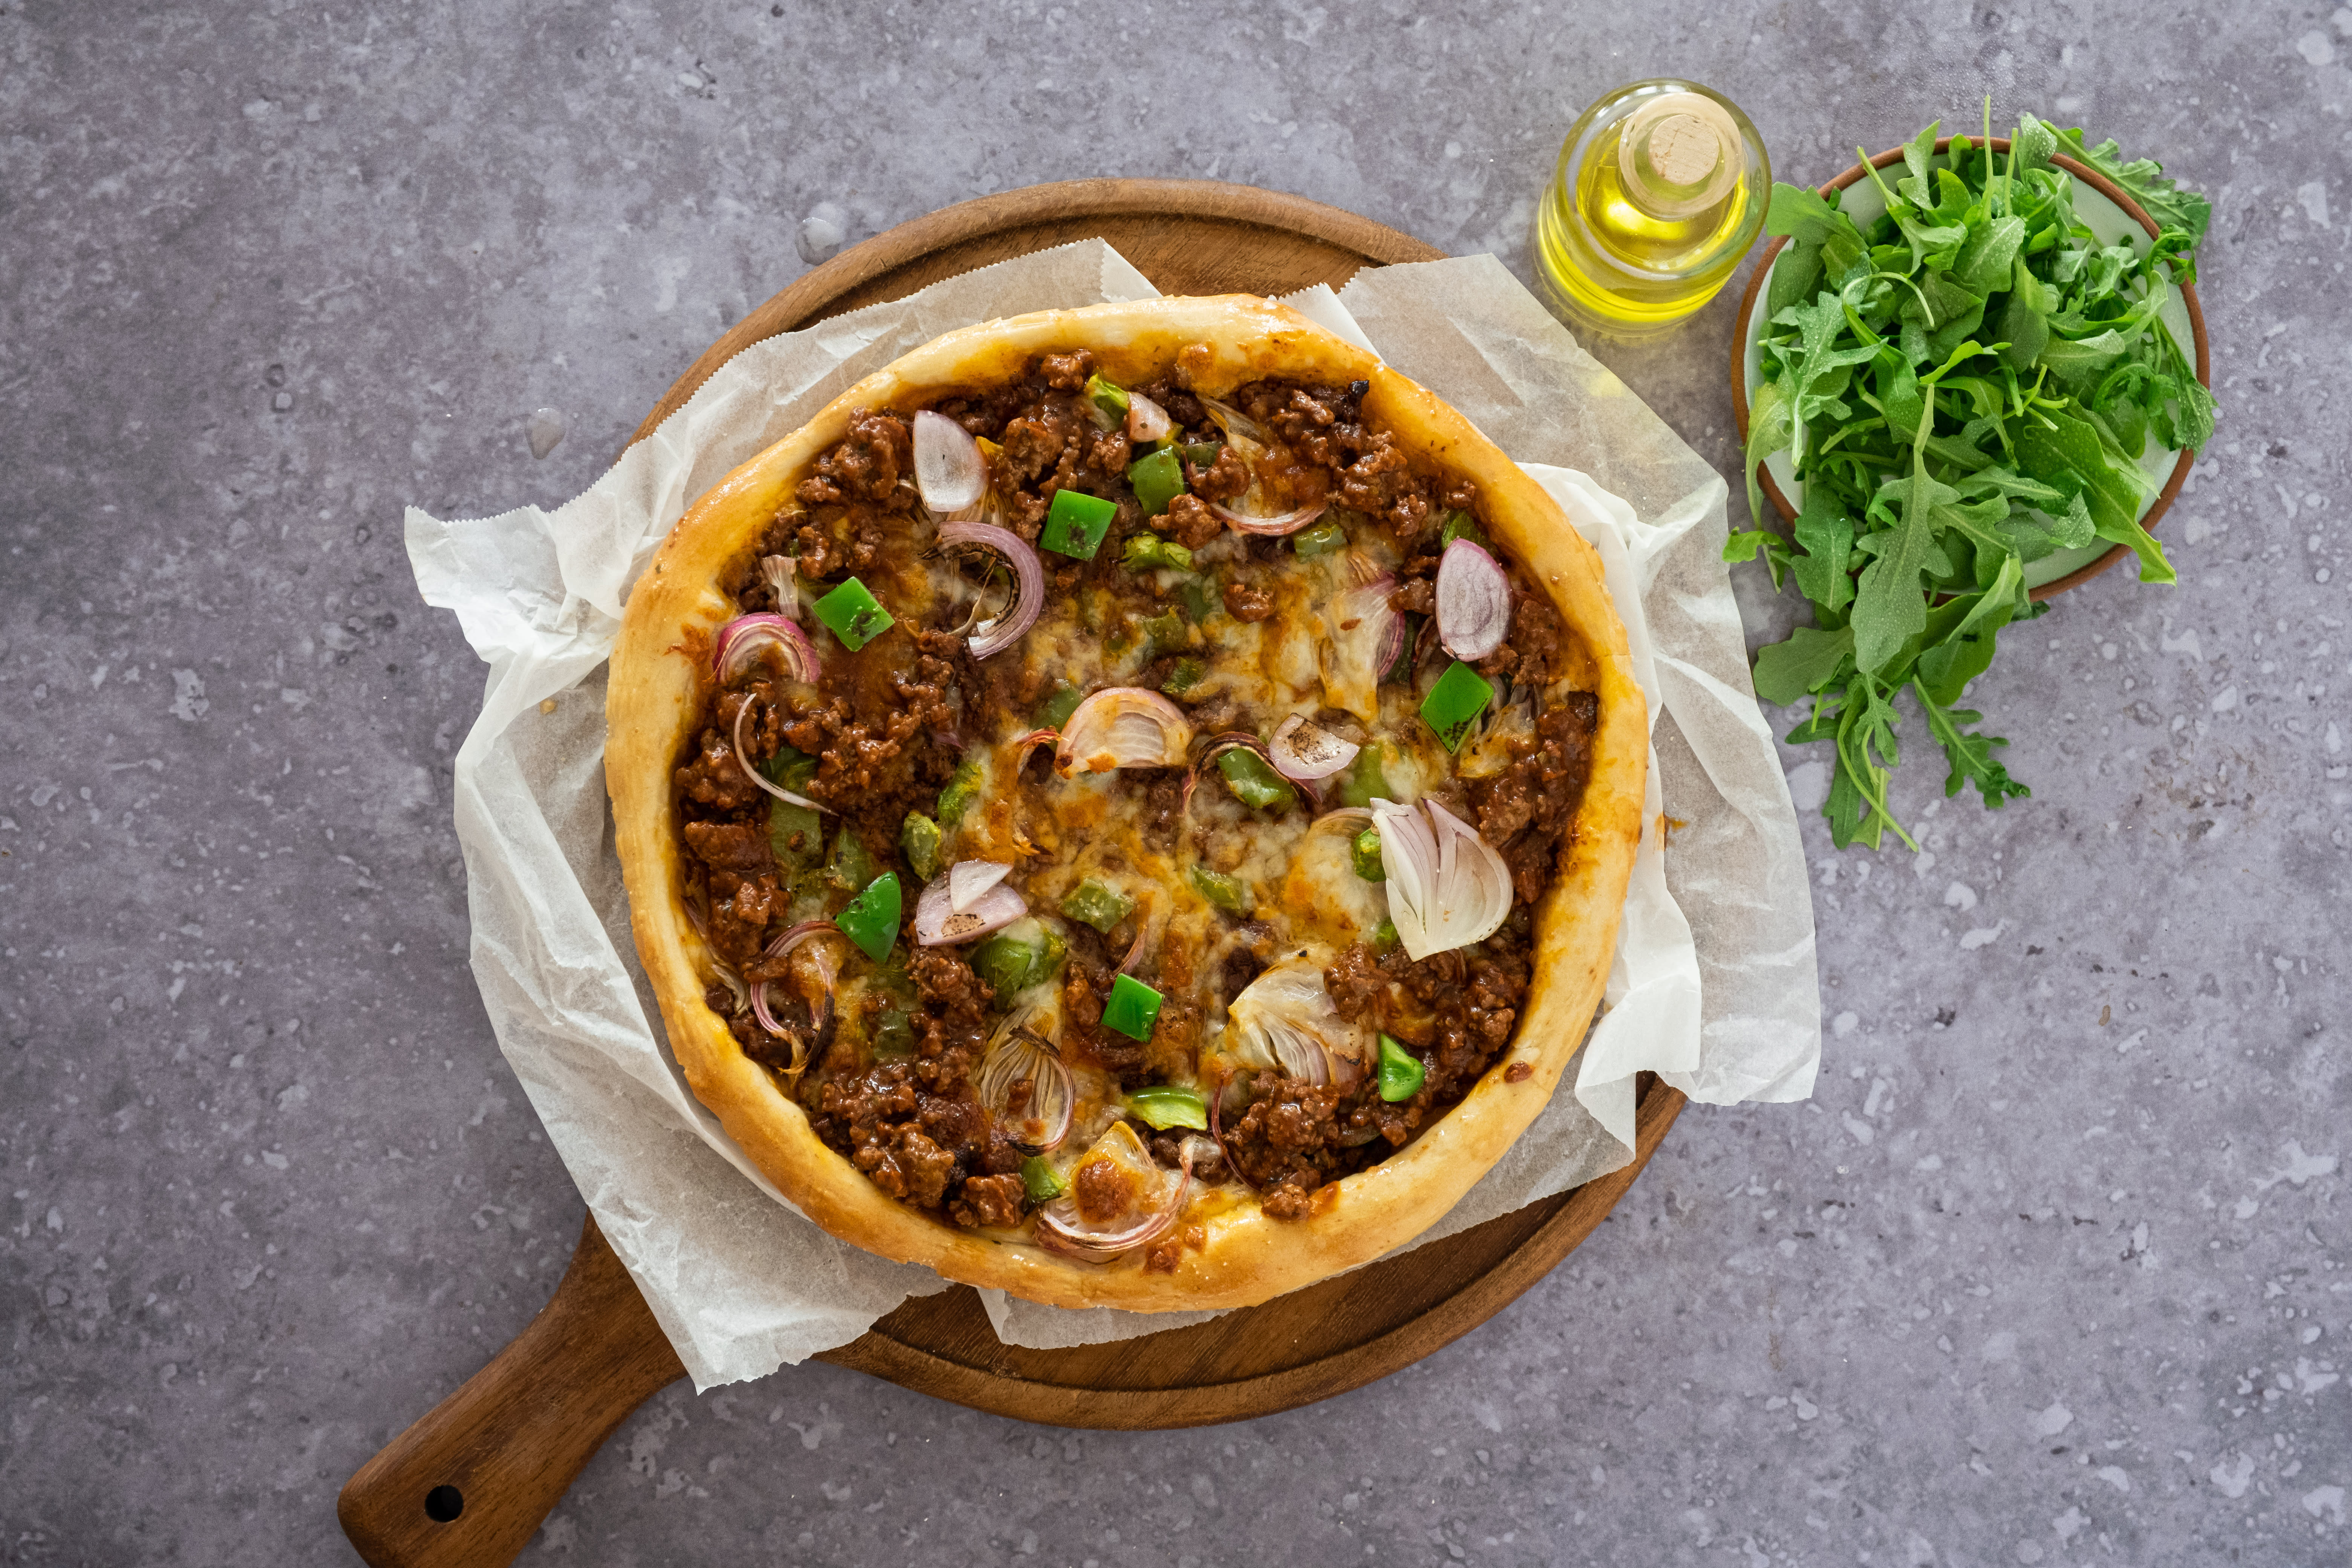 Sloppy Giusepe Pizza with Peppers and Onions